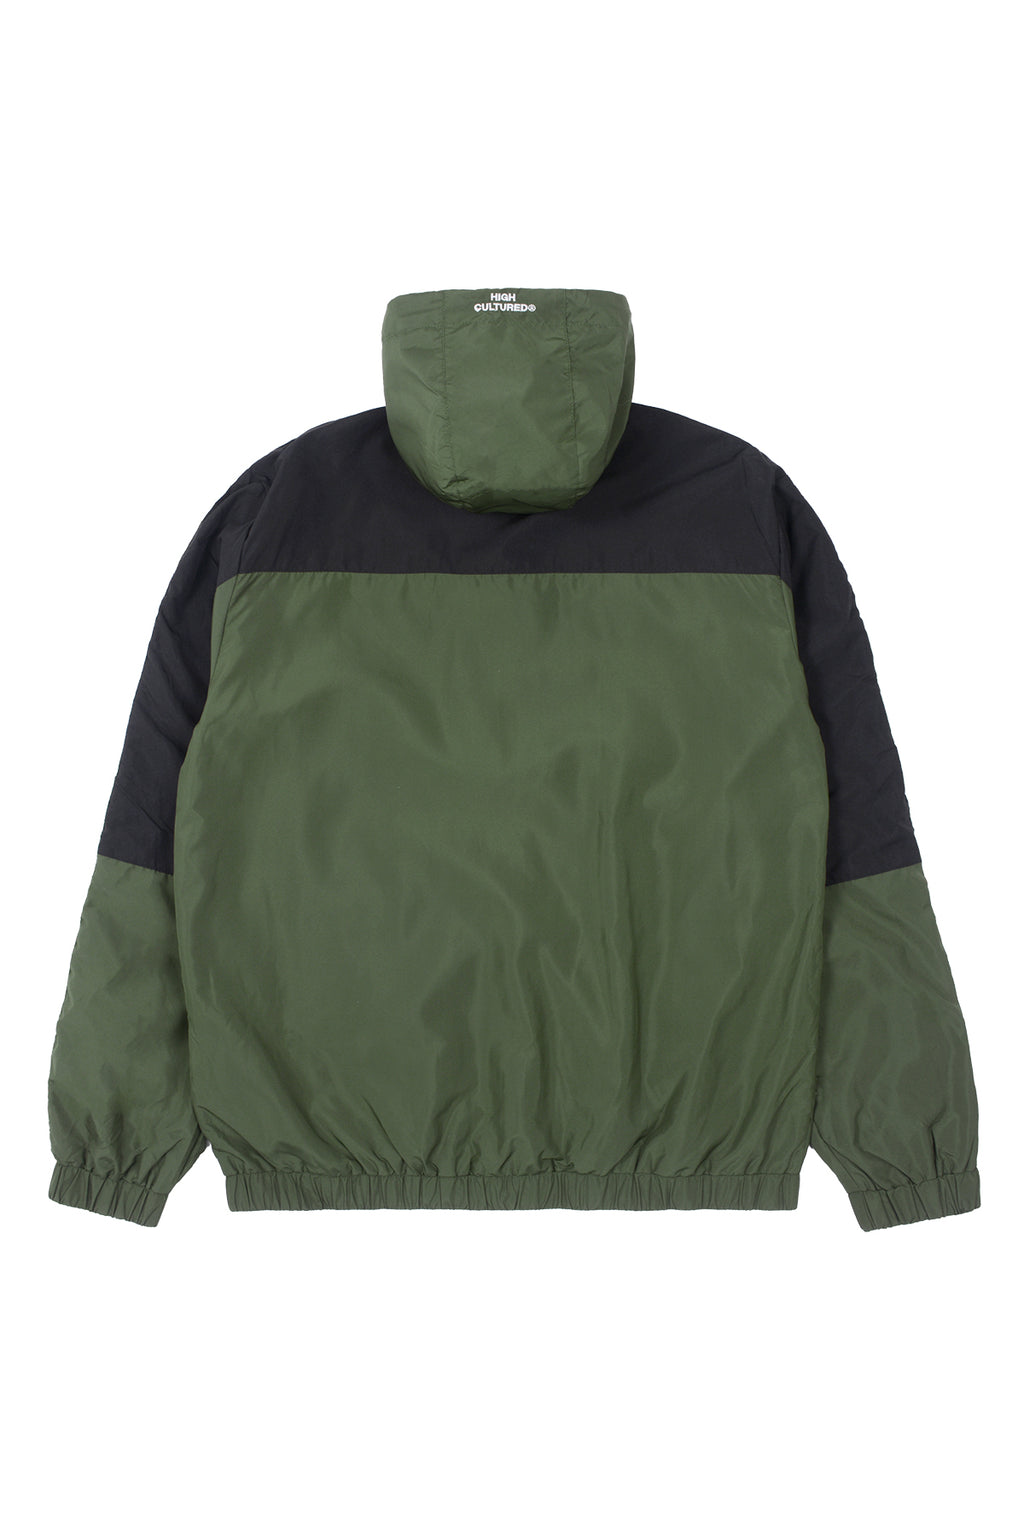 HIGH CULTURED PANNEL ATHLETICS WINDBREAKER | GREEN - 91